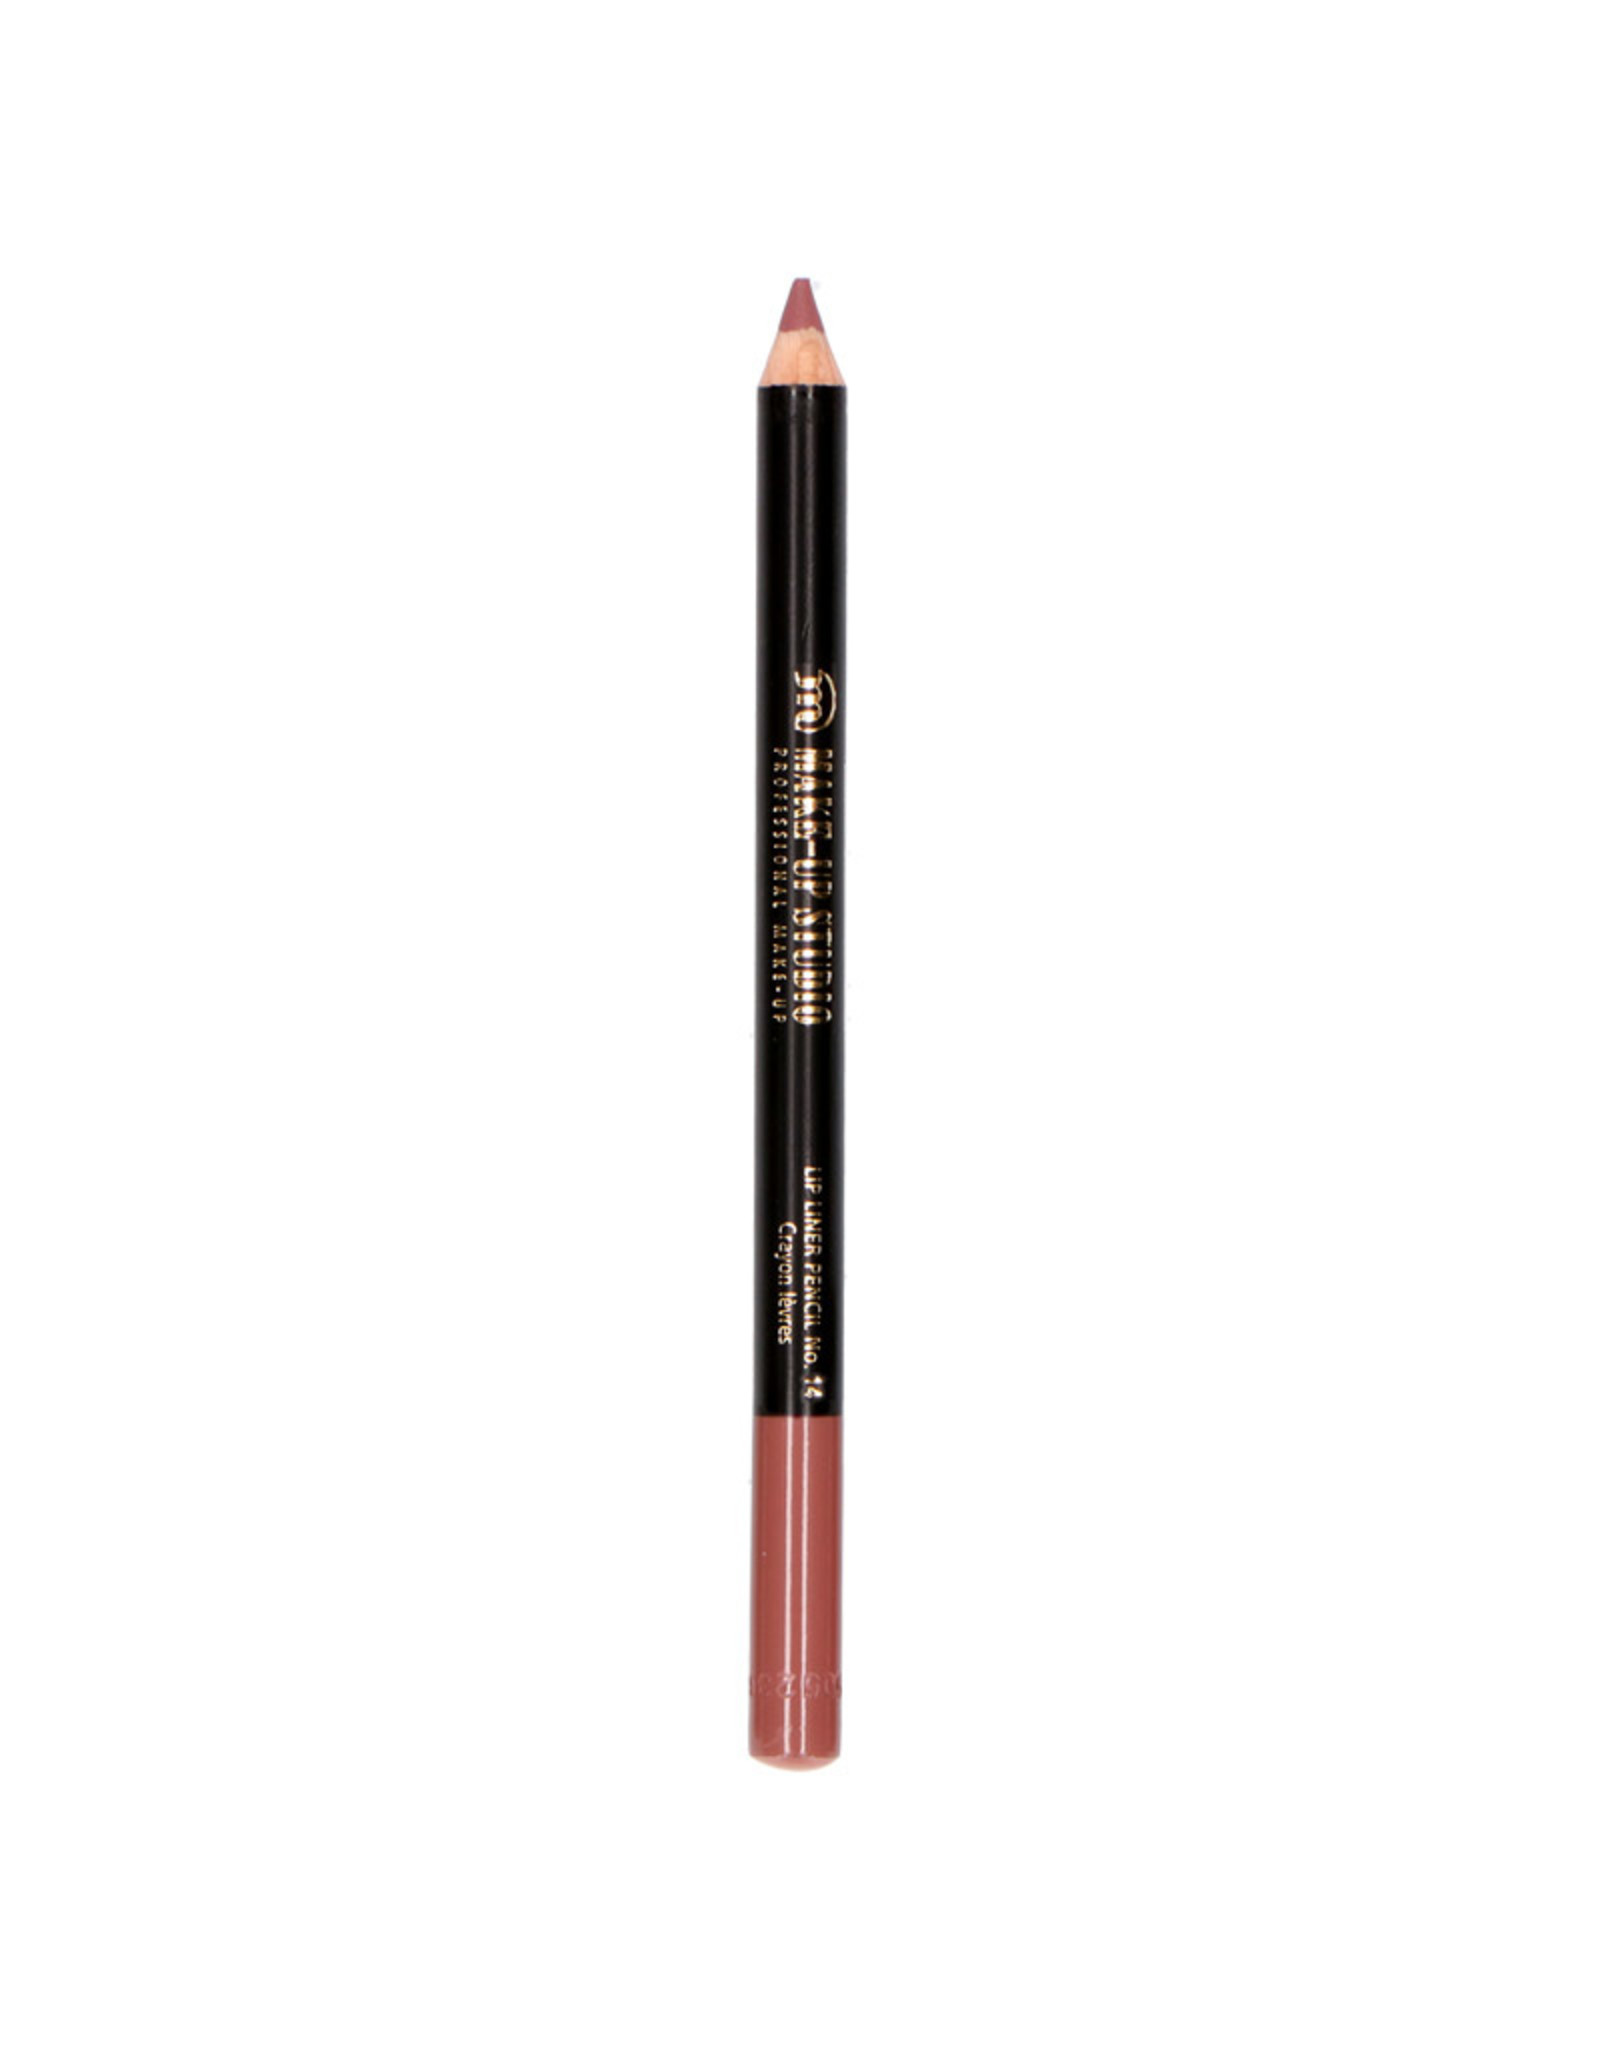 MAKE-UP STUDIO LIP LINER PENCIL 14